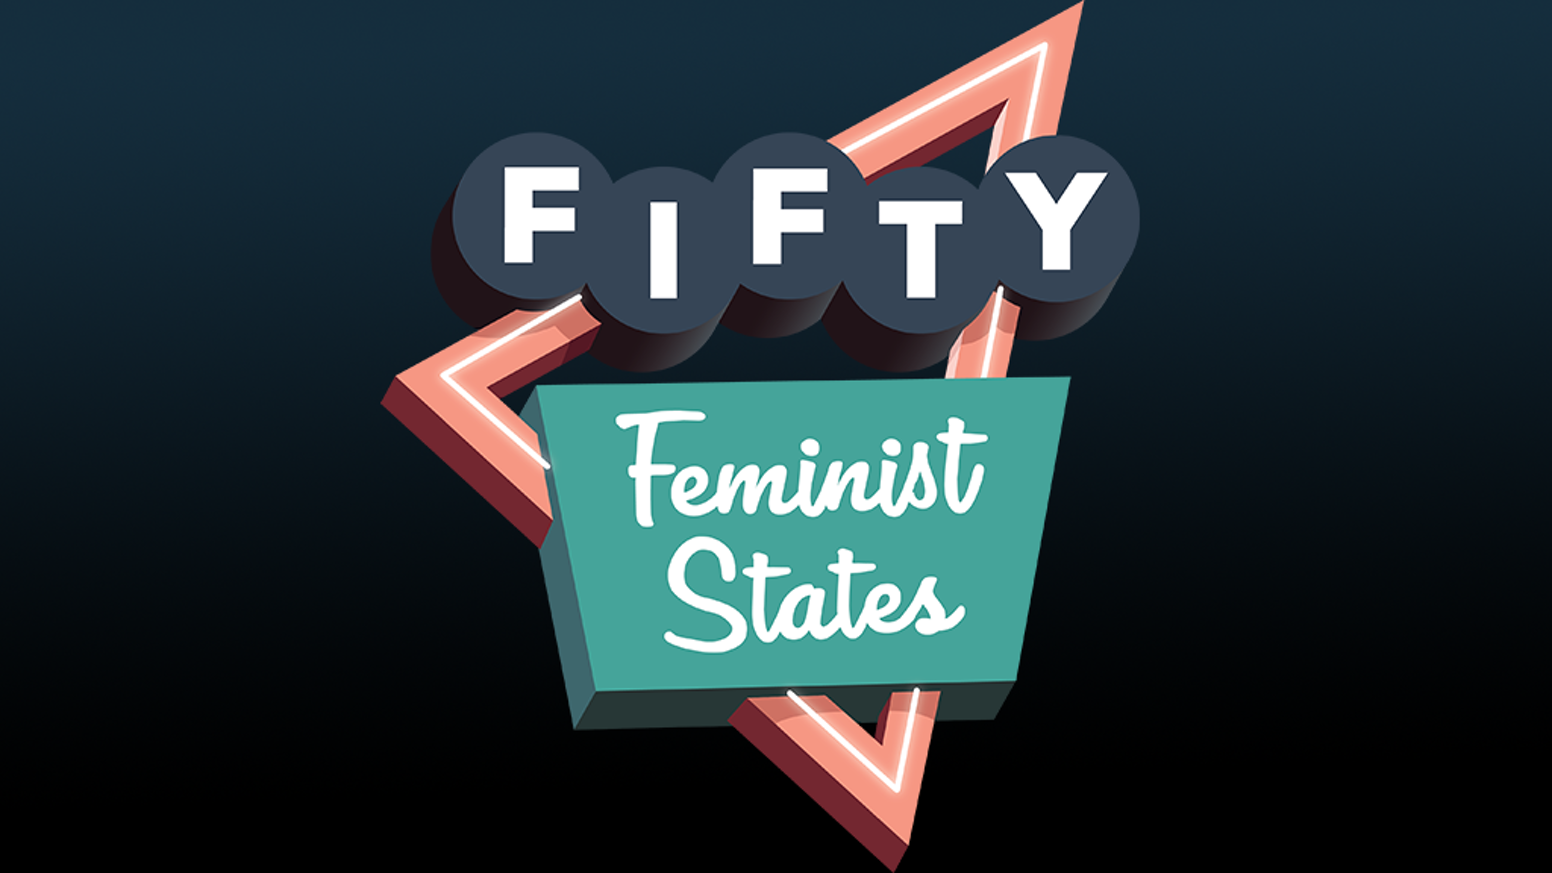 Fifty Feminist States is a multimedia storytelling project featuring feminist activists + artists from all fifty US states.